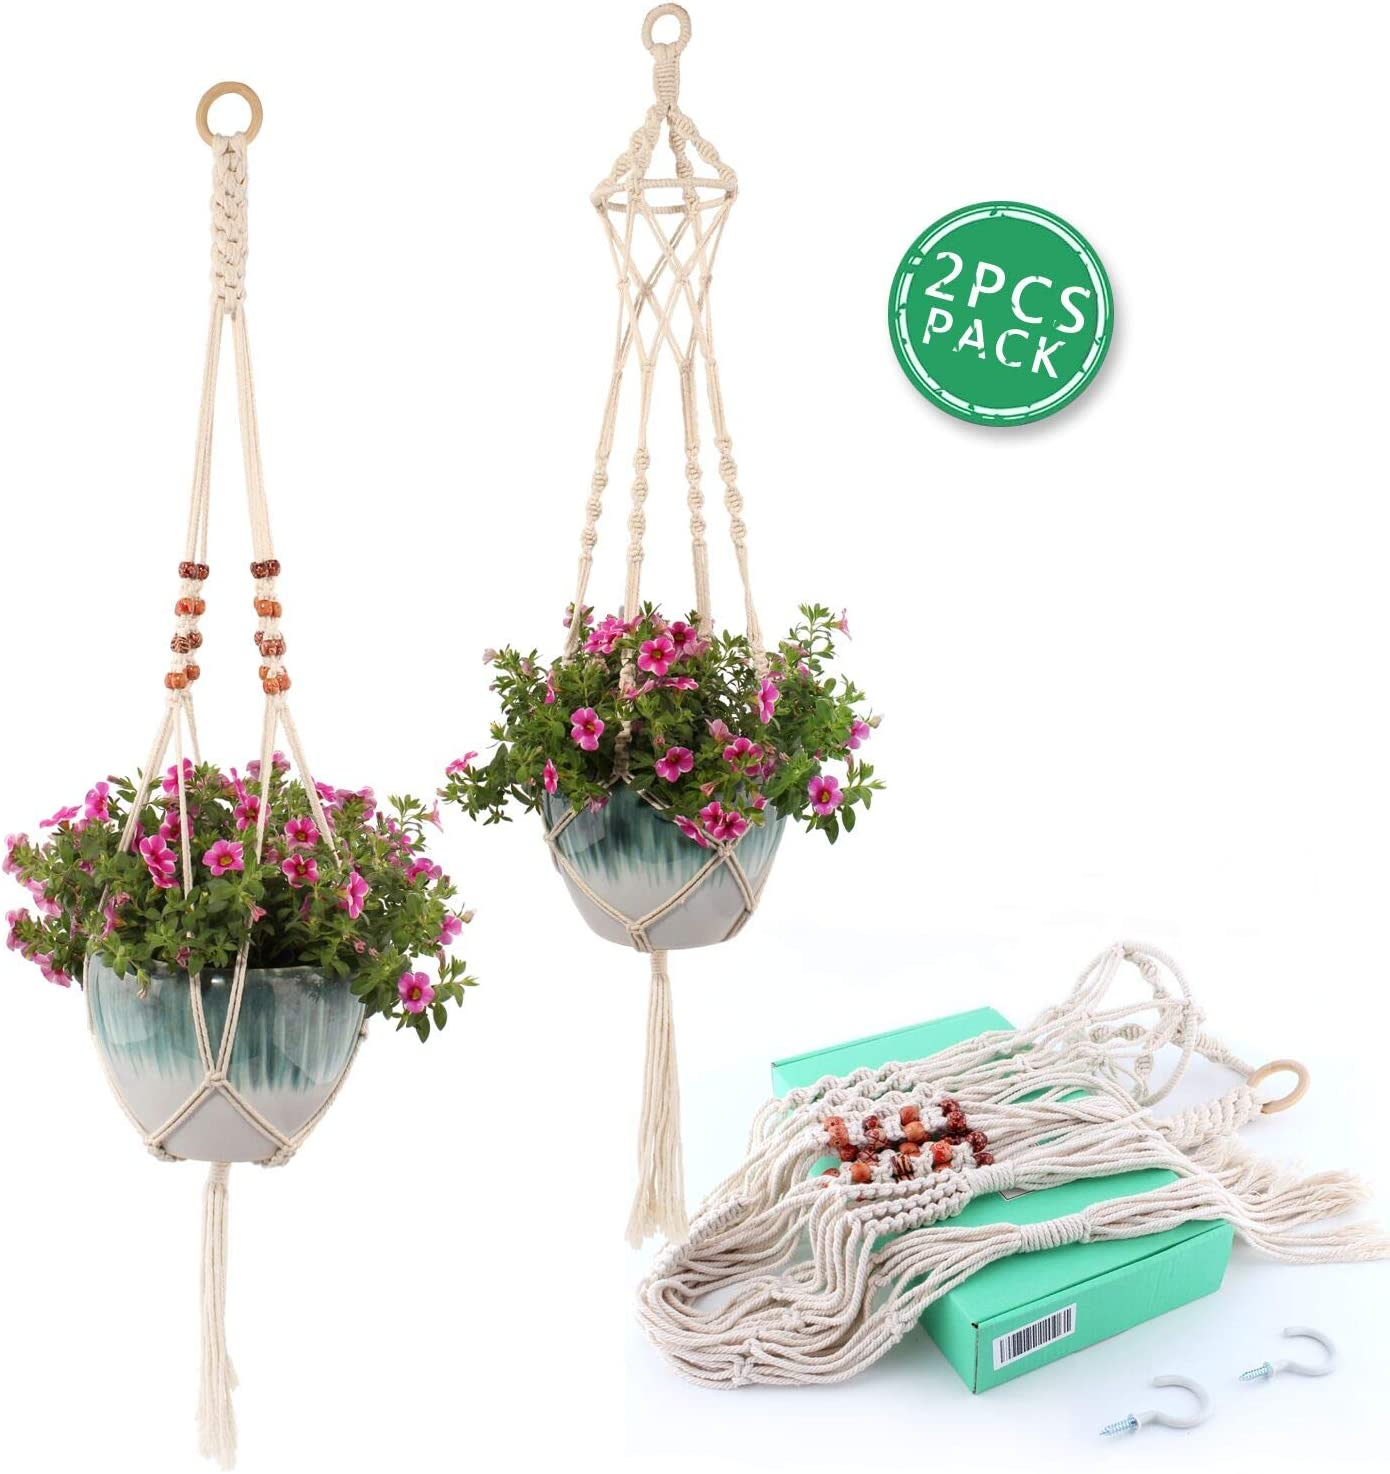 RICHOOSE Macrame Plant Hanger 2PCS Boho Cotton Home Decor Hanging Flower Pot Basket Holder